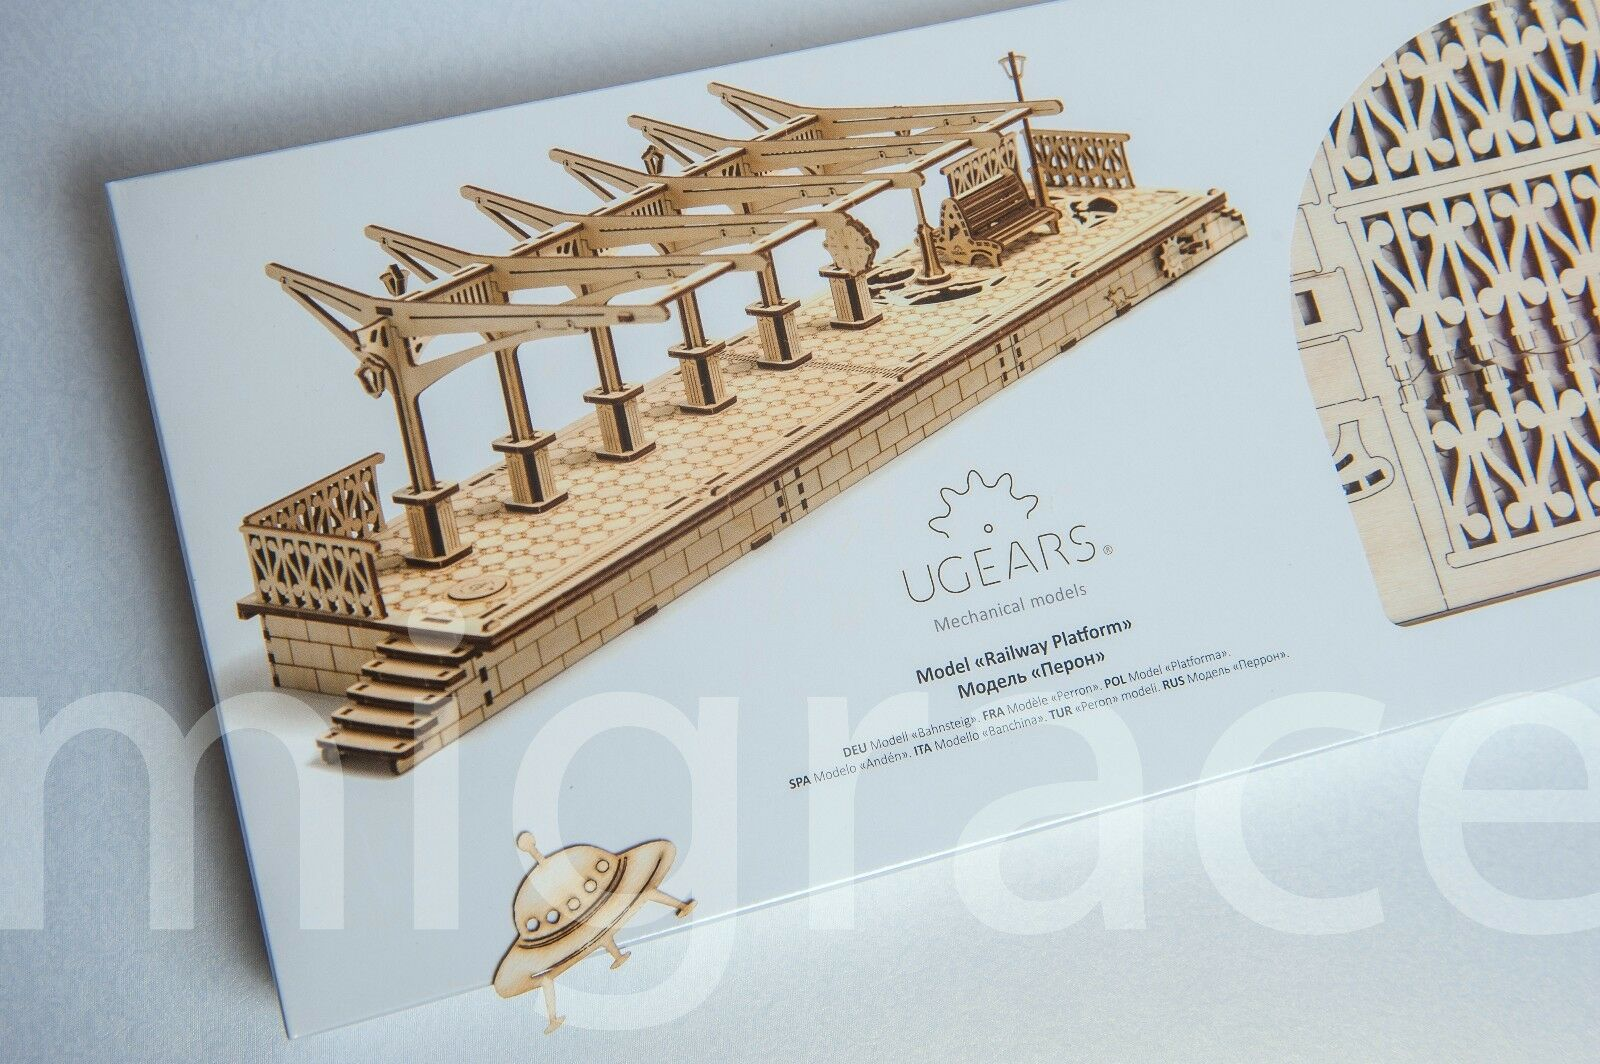 UGears-NEW-MODELS-mechanical-wooden-3D-p